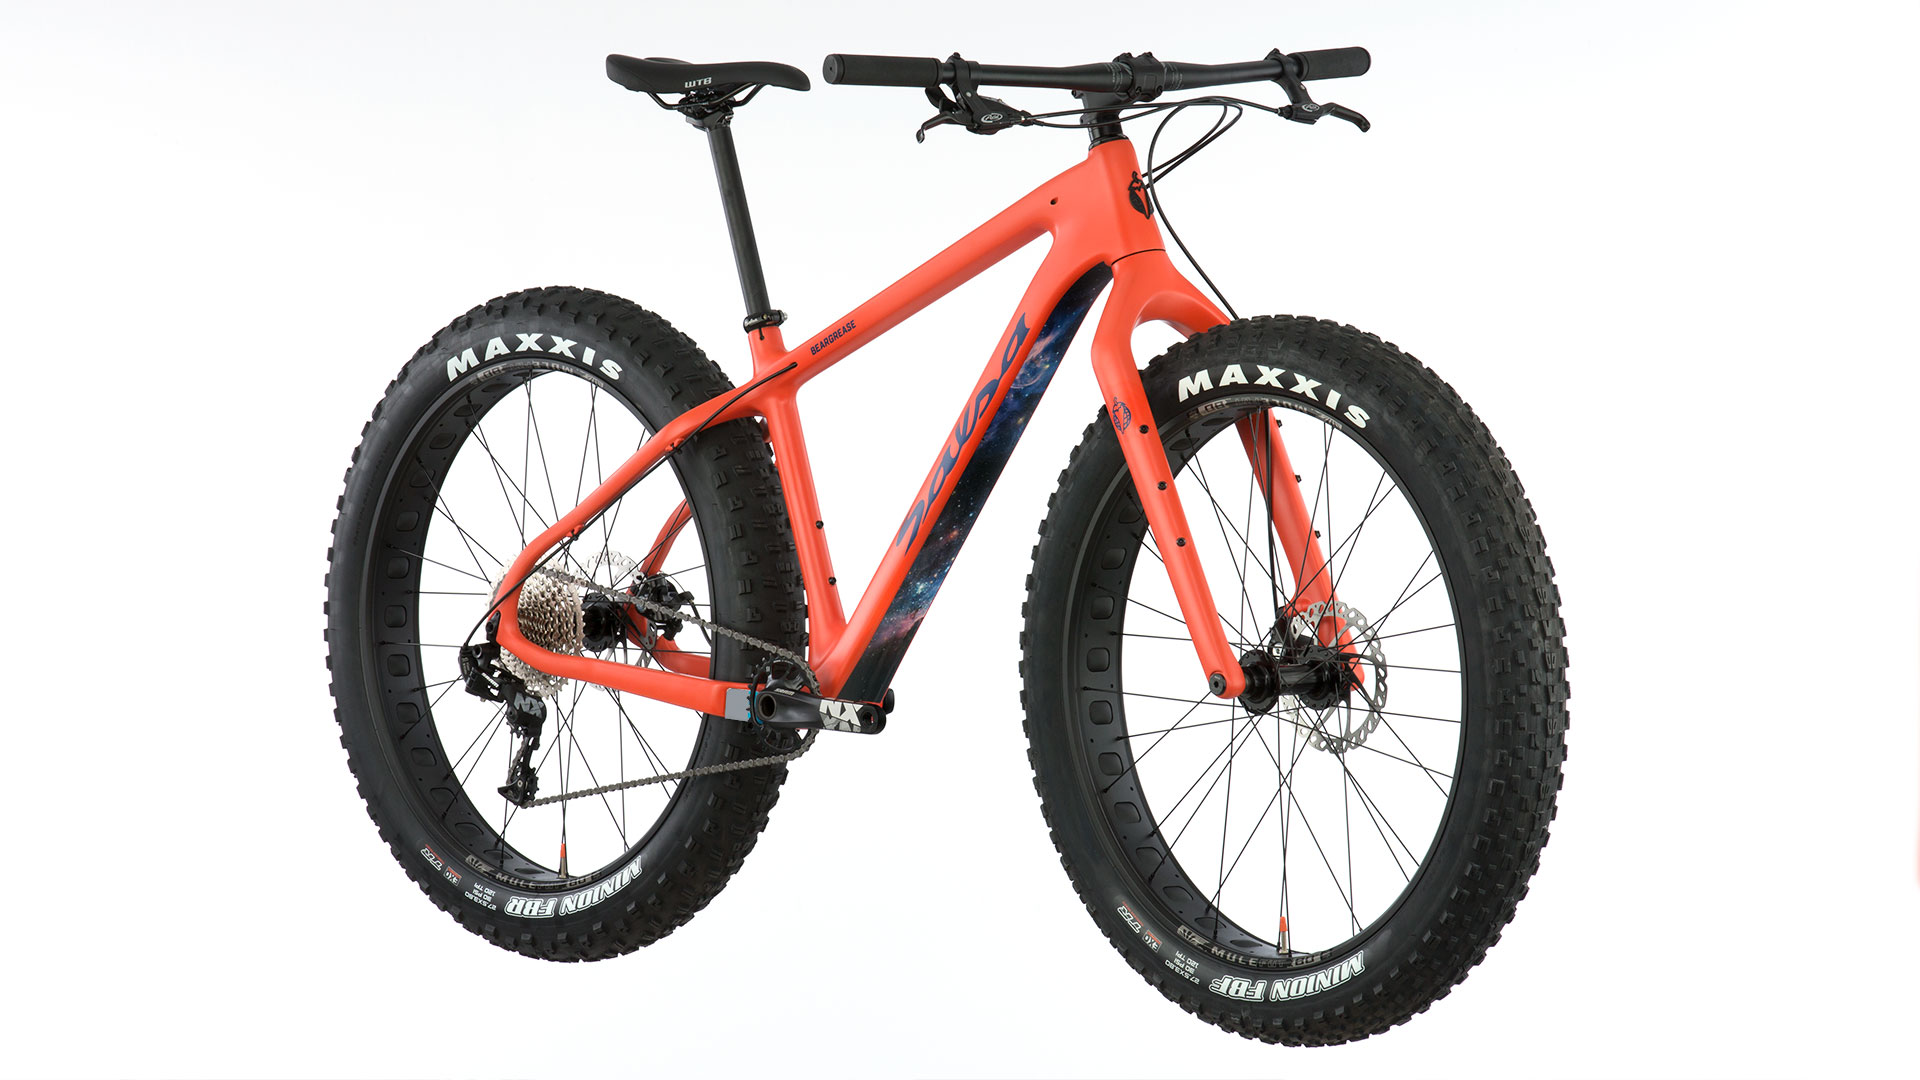 Salsa Beargrease Fat bike